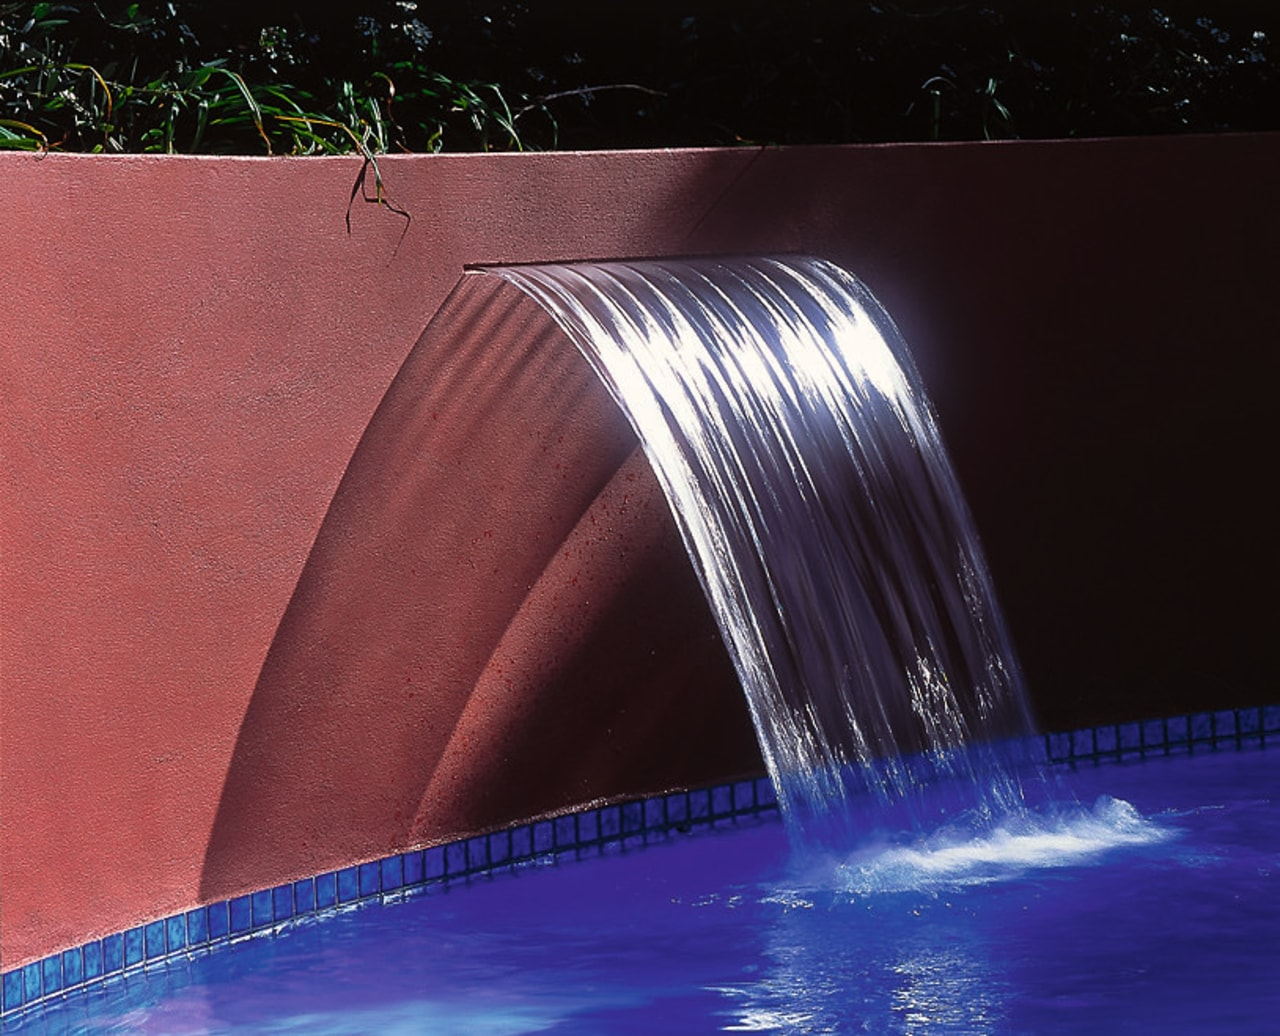 Inner view of the water feature light, lighting, reflection, water, water feature, water resources, black, red